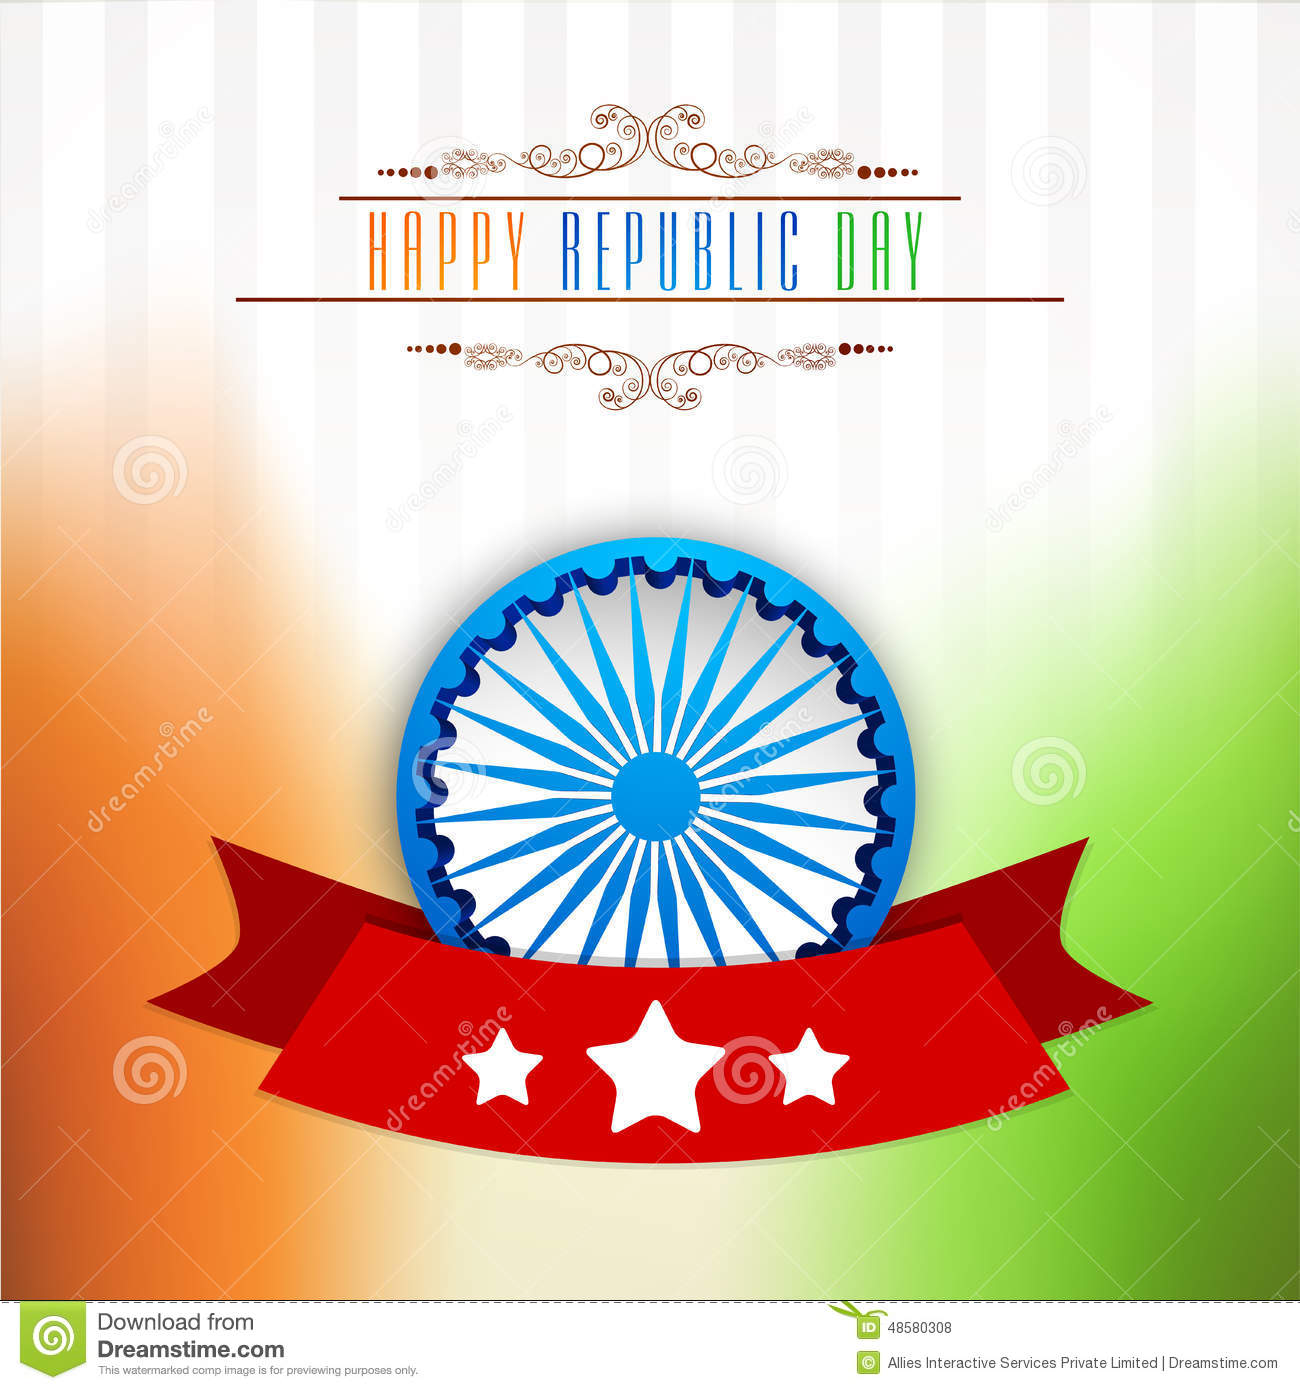 Greeting card design for indian republic day celebration stock greeting card design for indian republic day celebration stock illustration illustration of design holiday 48580308 m4hsunfo